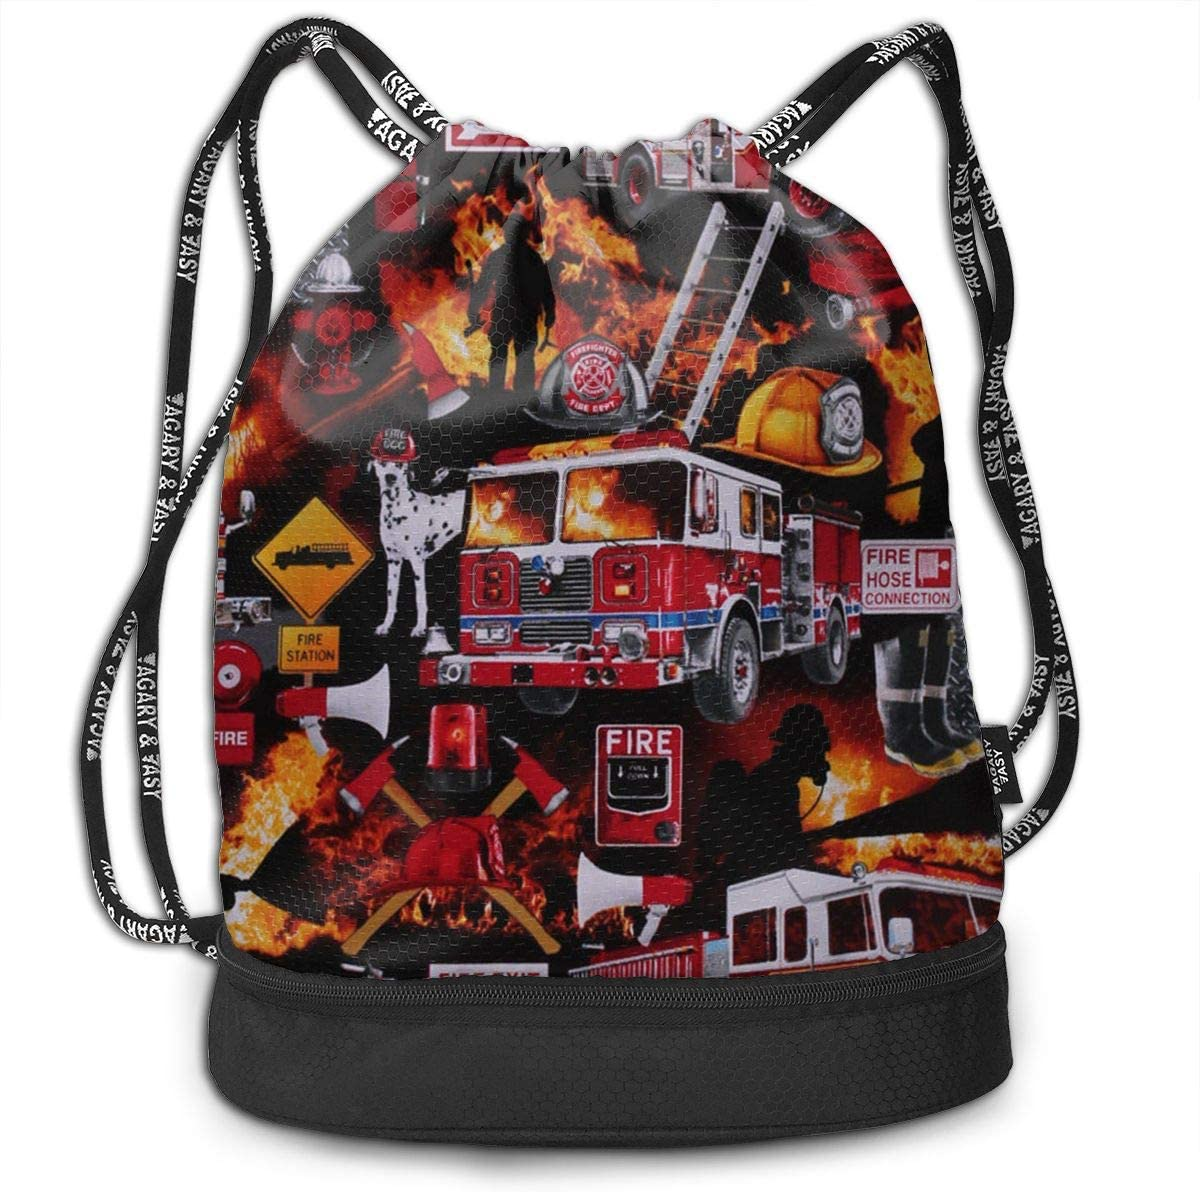 Portable Luggage Duffel Bag Firefighter Equipment Dalmatian Dog Fire Travel Bags Carry-on In Trolley Handle